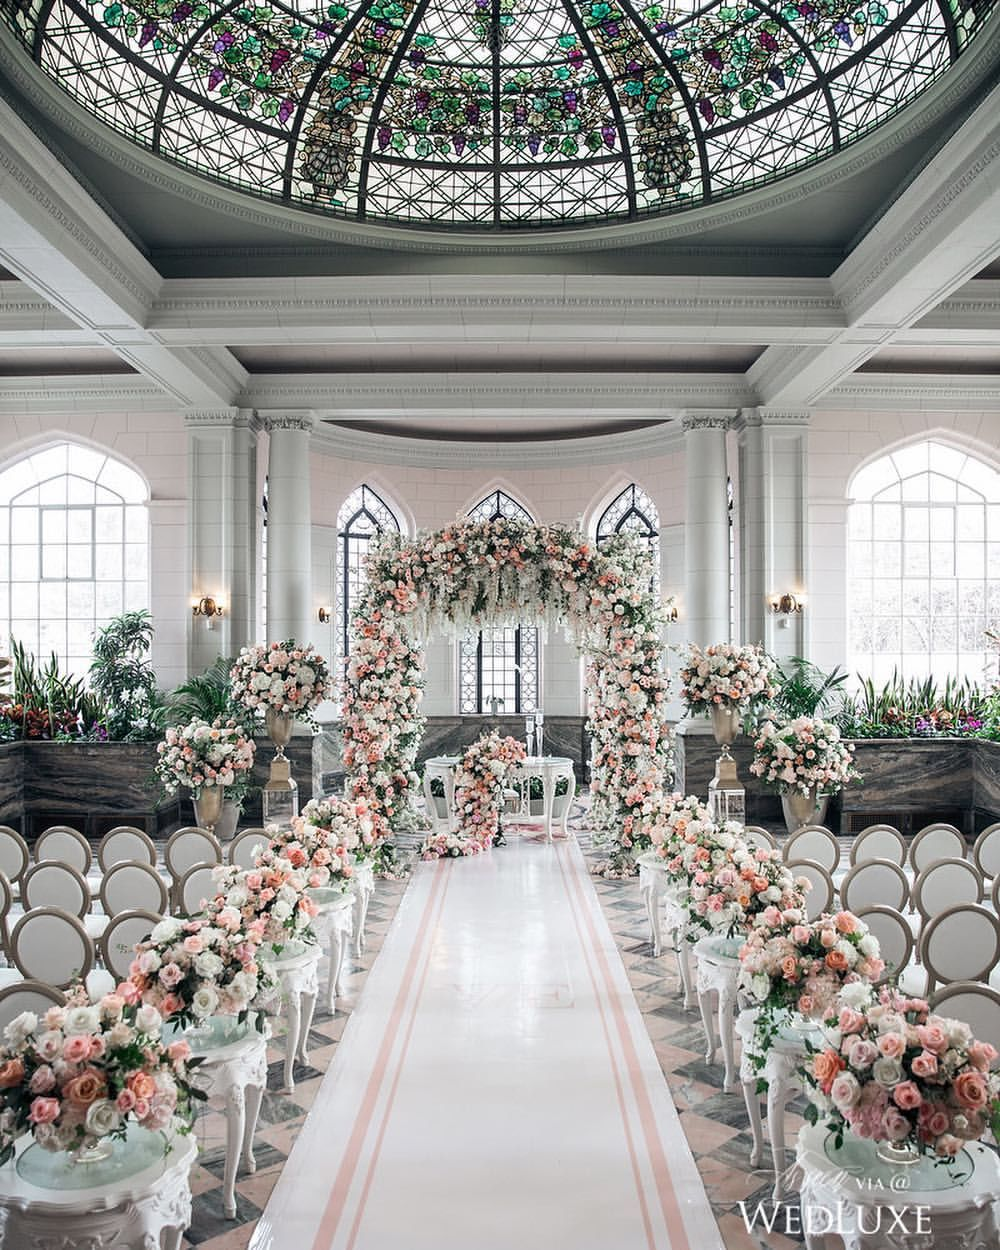 Wedding Ceremony Decorations Ideas Indoor: Dreamy Floral Arch ️Stained Glass Ceiling ️Custom Aisle